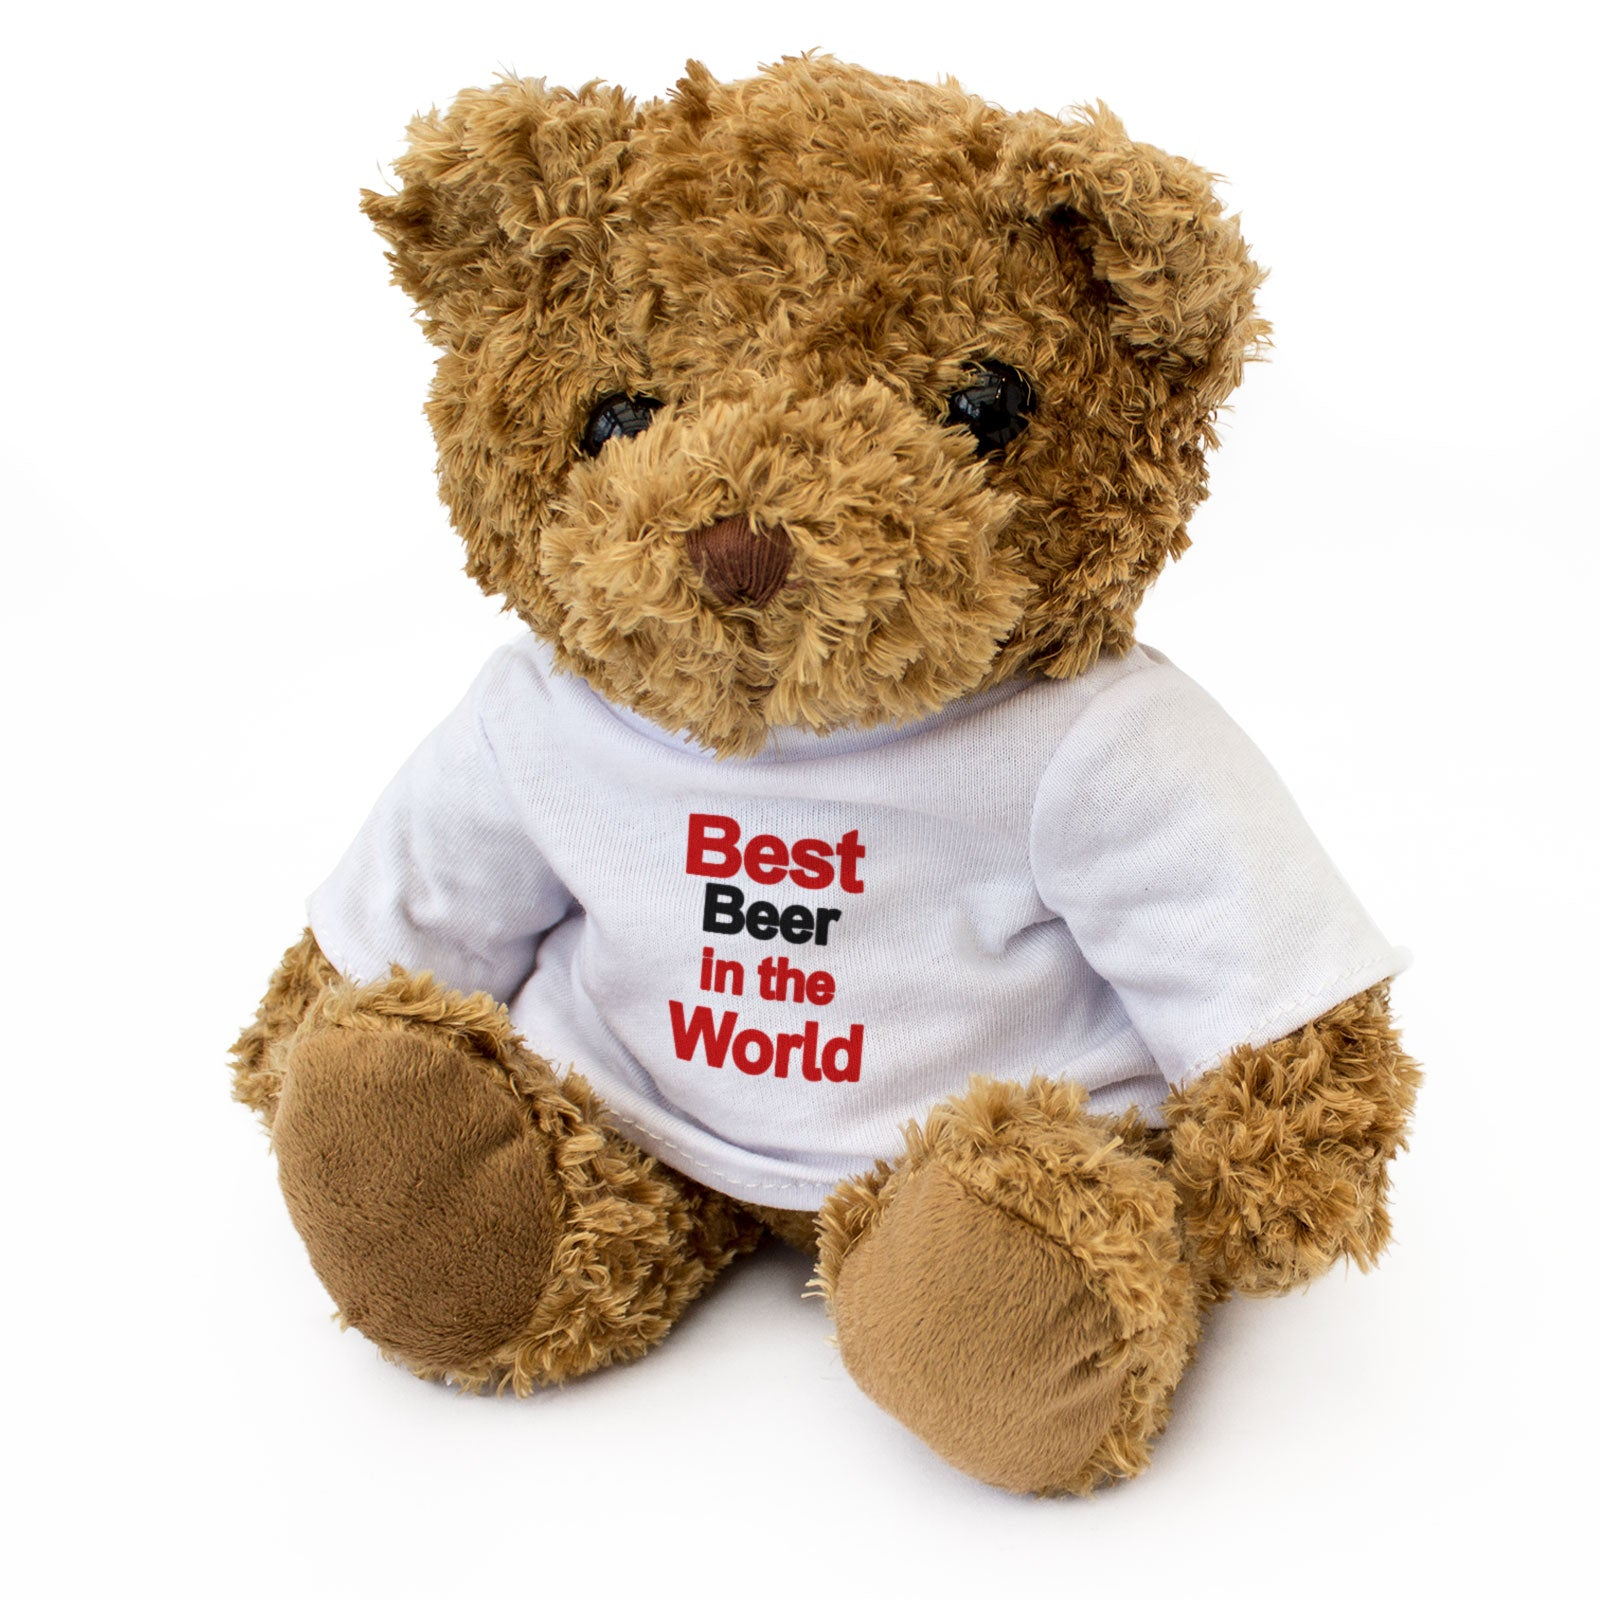 Best Beer In The World Teddy Bear Gift for Beer Lovers